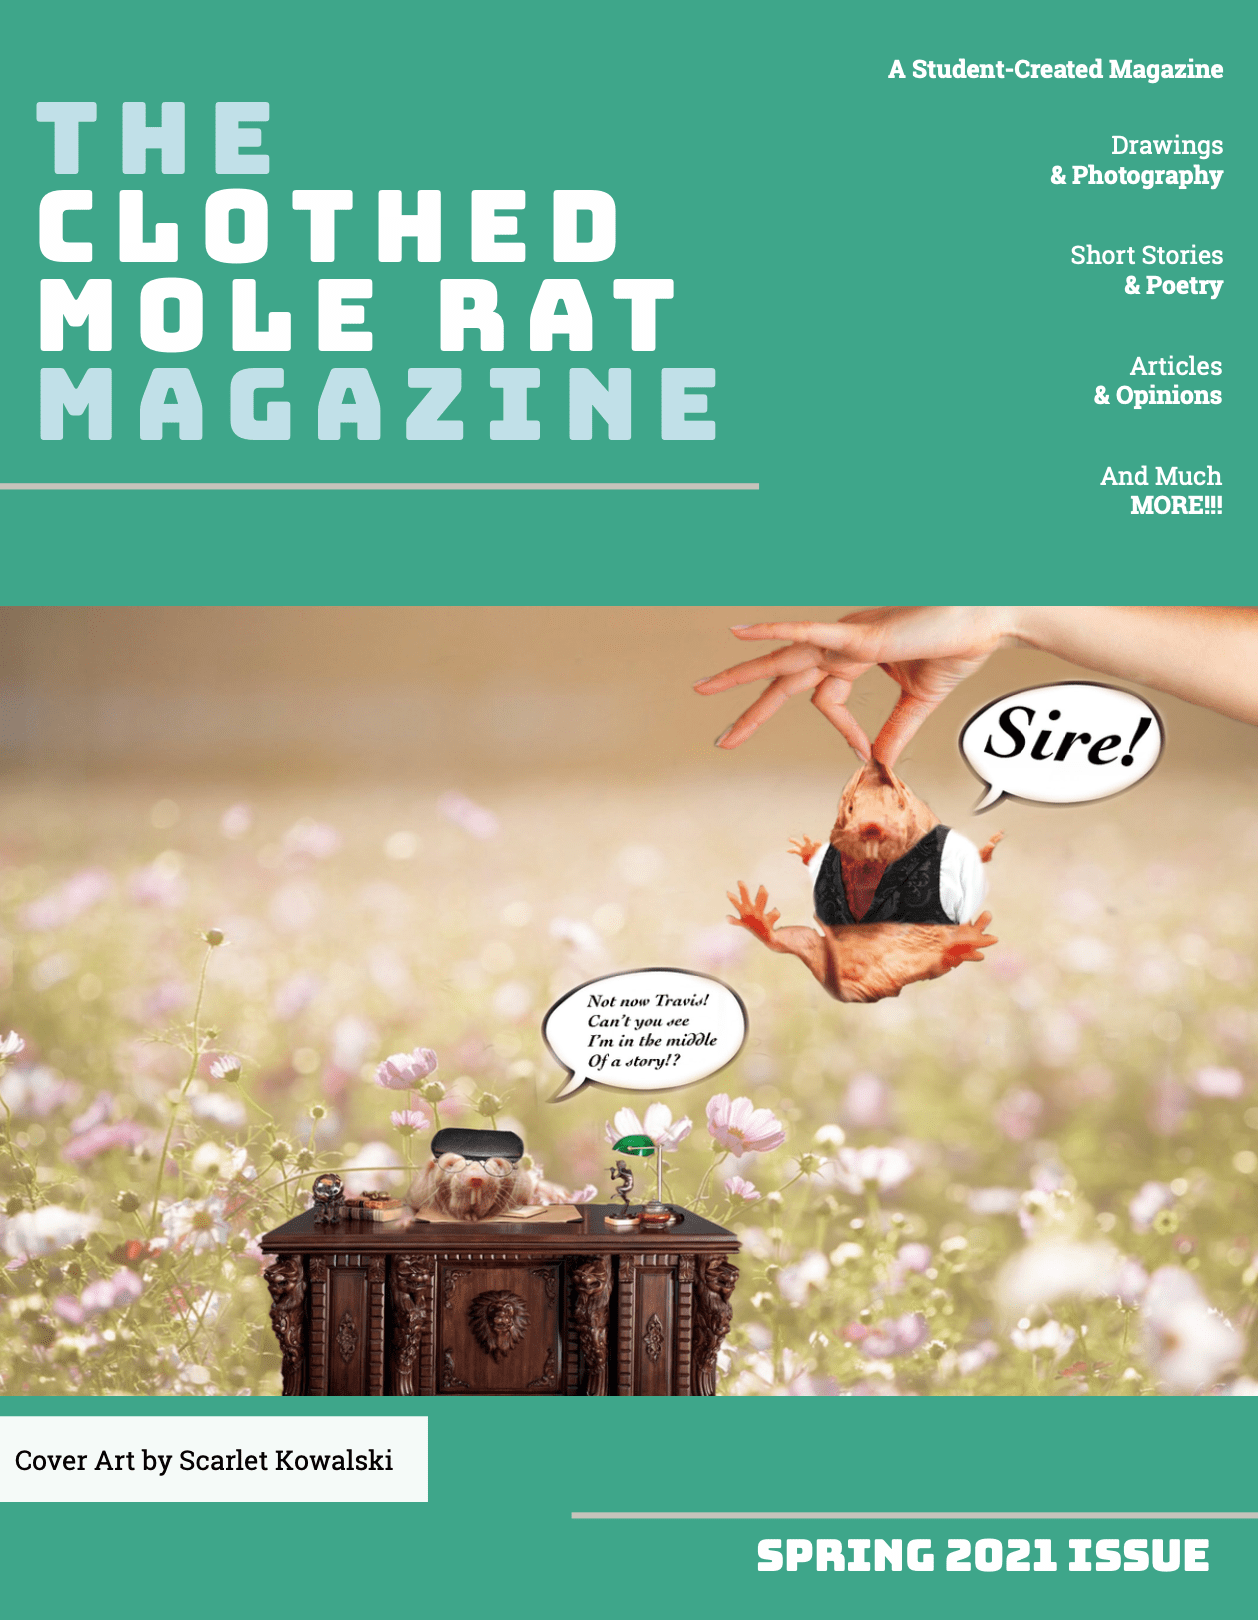 The Clothed Mole Rat Magazine - Spring 2021 Issue